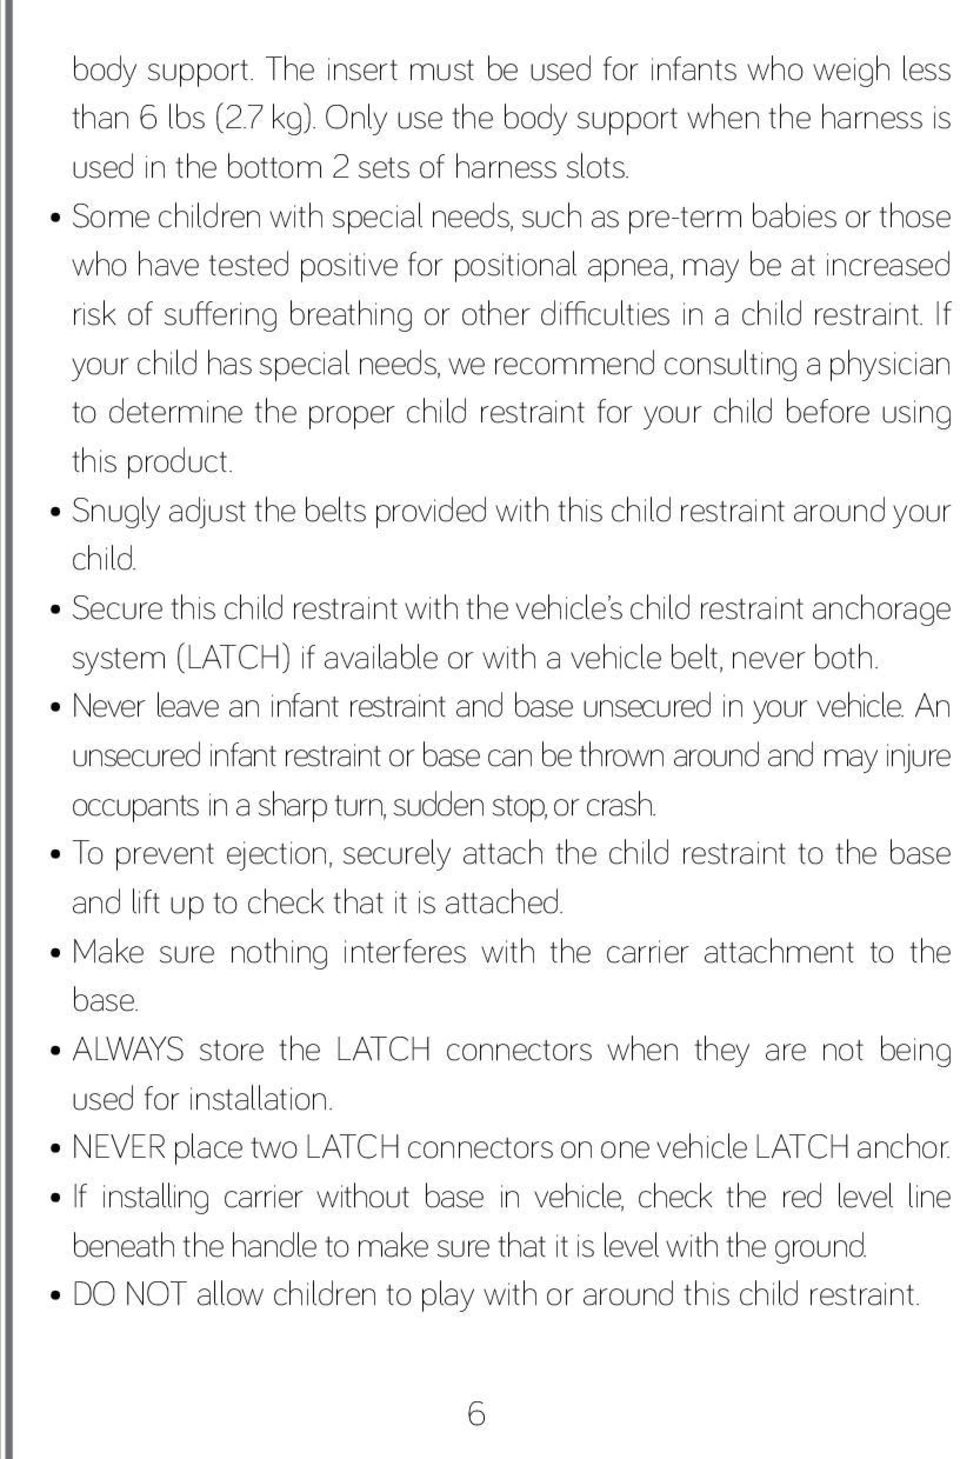 restraint. If your child has special needs, we recommend consulting a physician to determine the proper child restraint for your child before using this product.